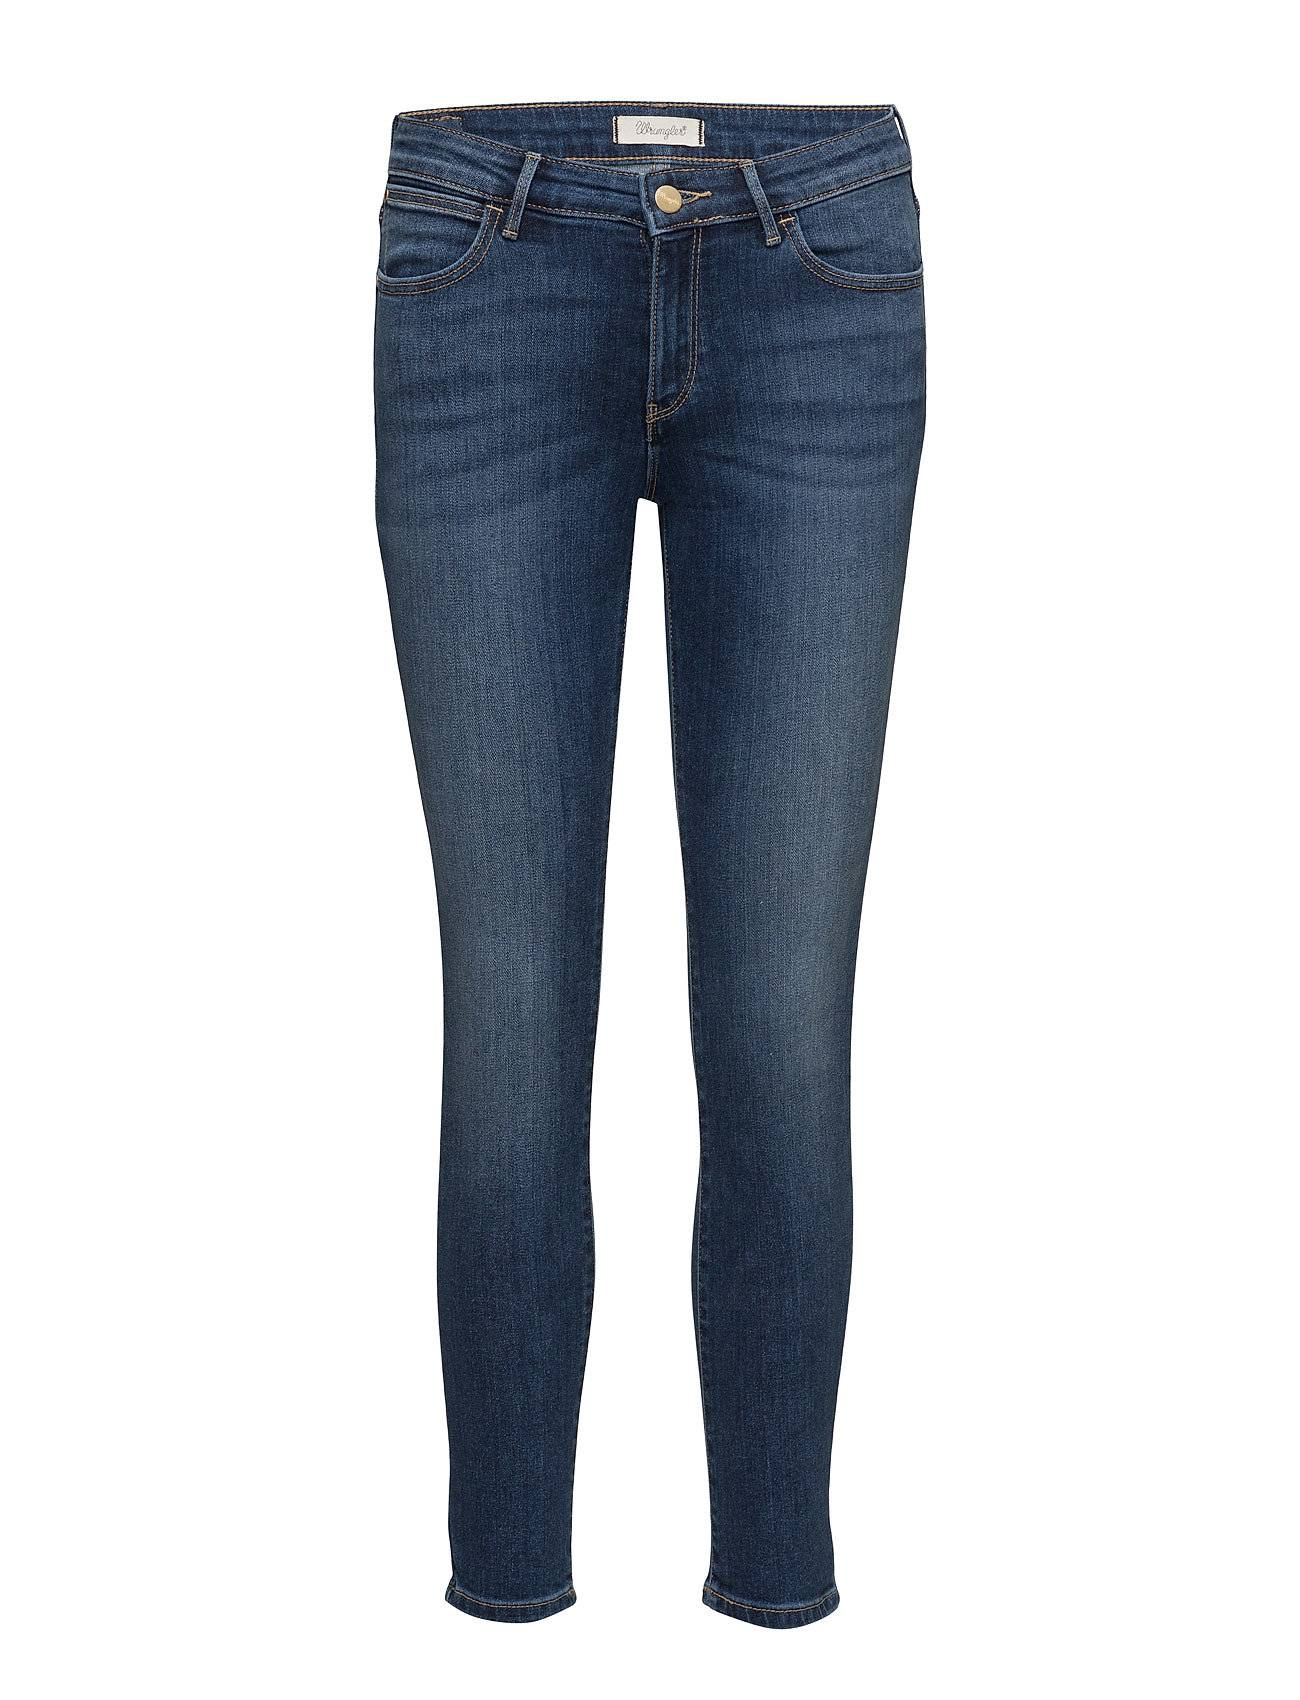 Wrangler Skinny Authentic Blue